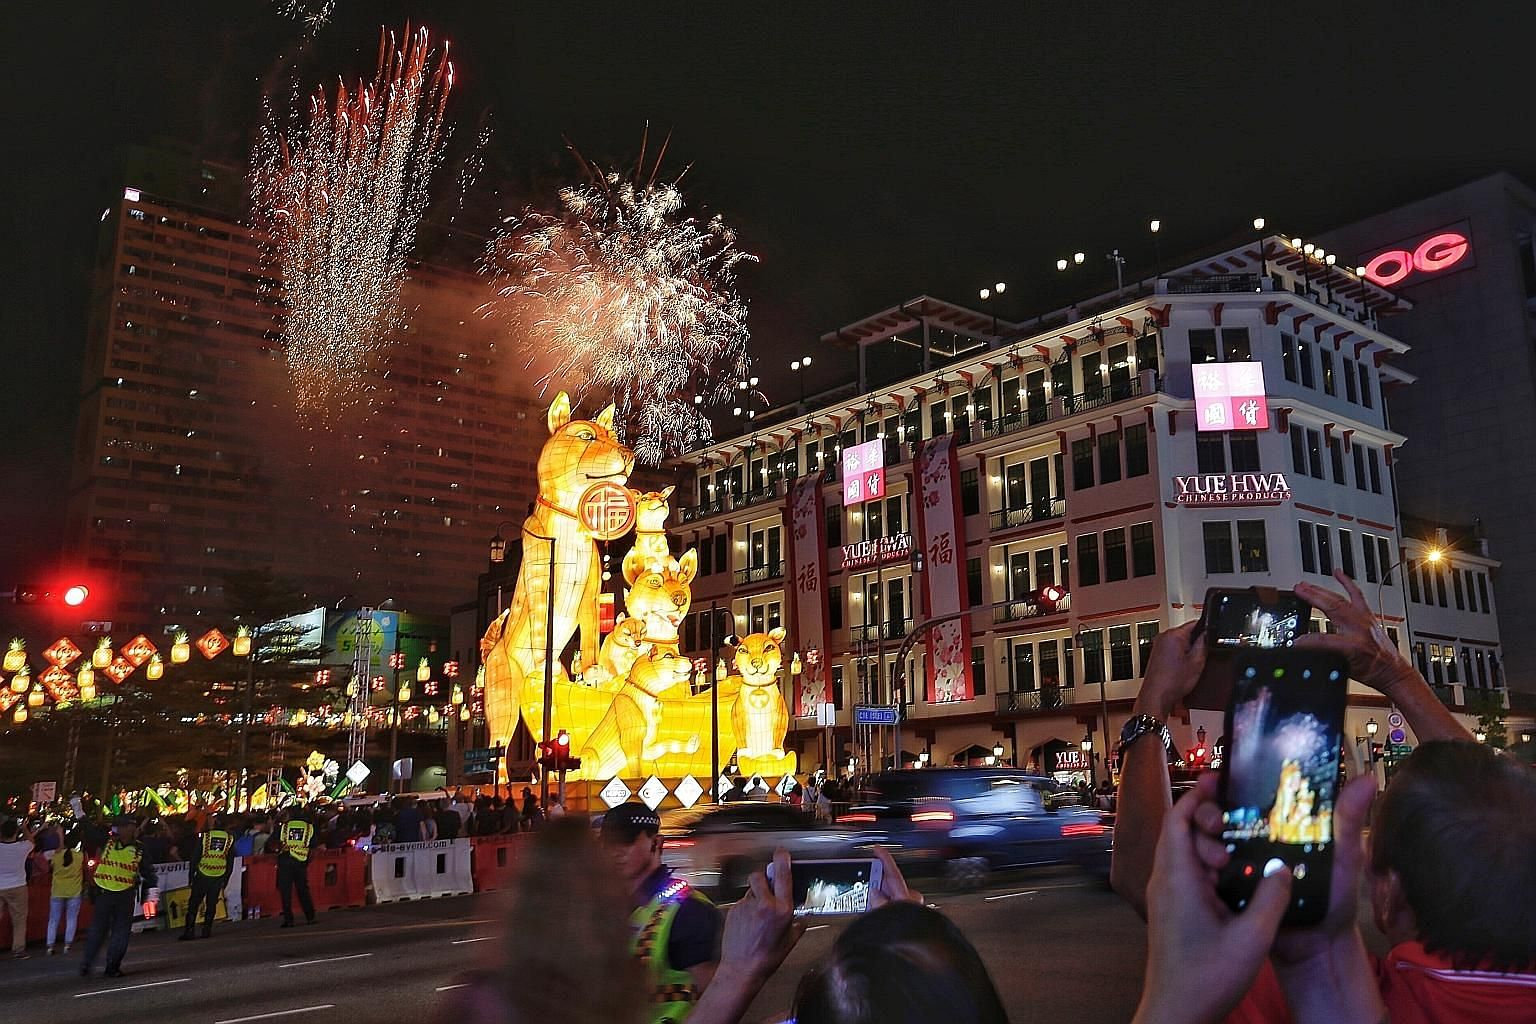 Above: Prime Minister Lee Hsien Loong launched this year's Chinese New Year celebrations in Chinatown last night, kick-starting 49 days of festivities. Top: Fireworks lighting up the sky in Chinatown.